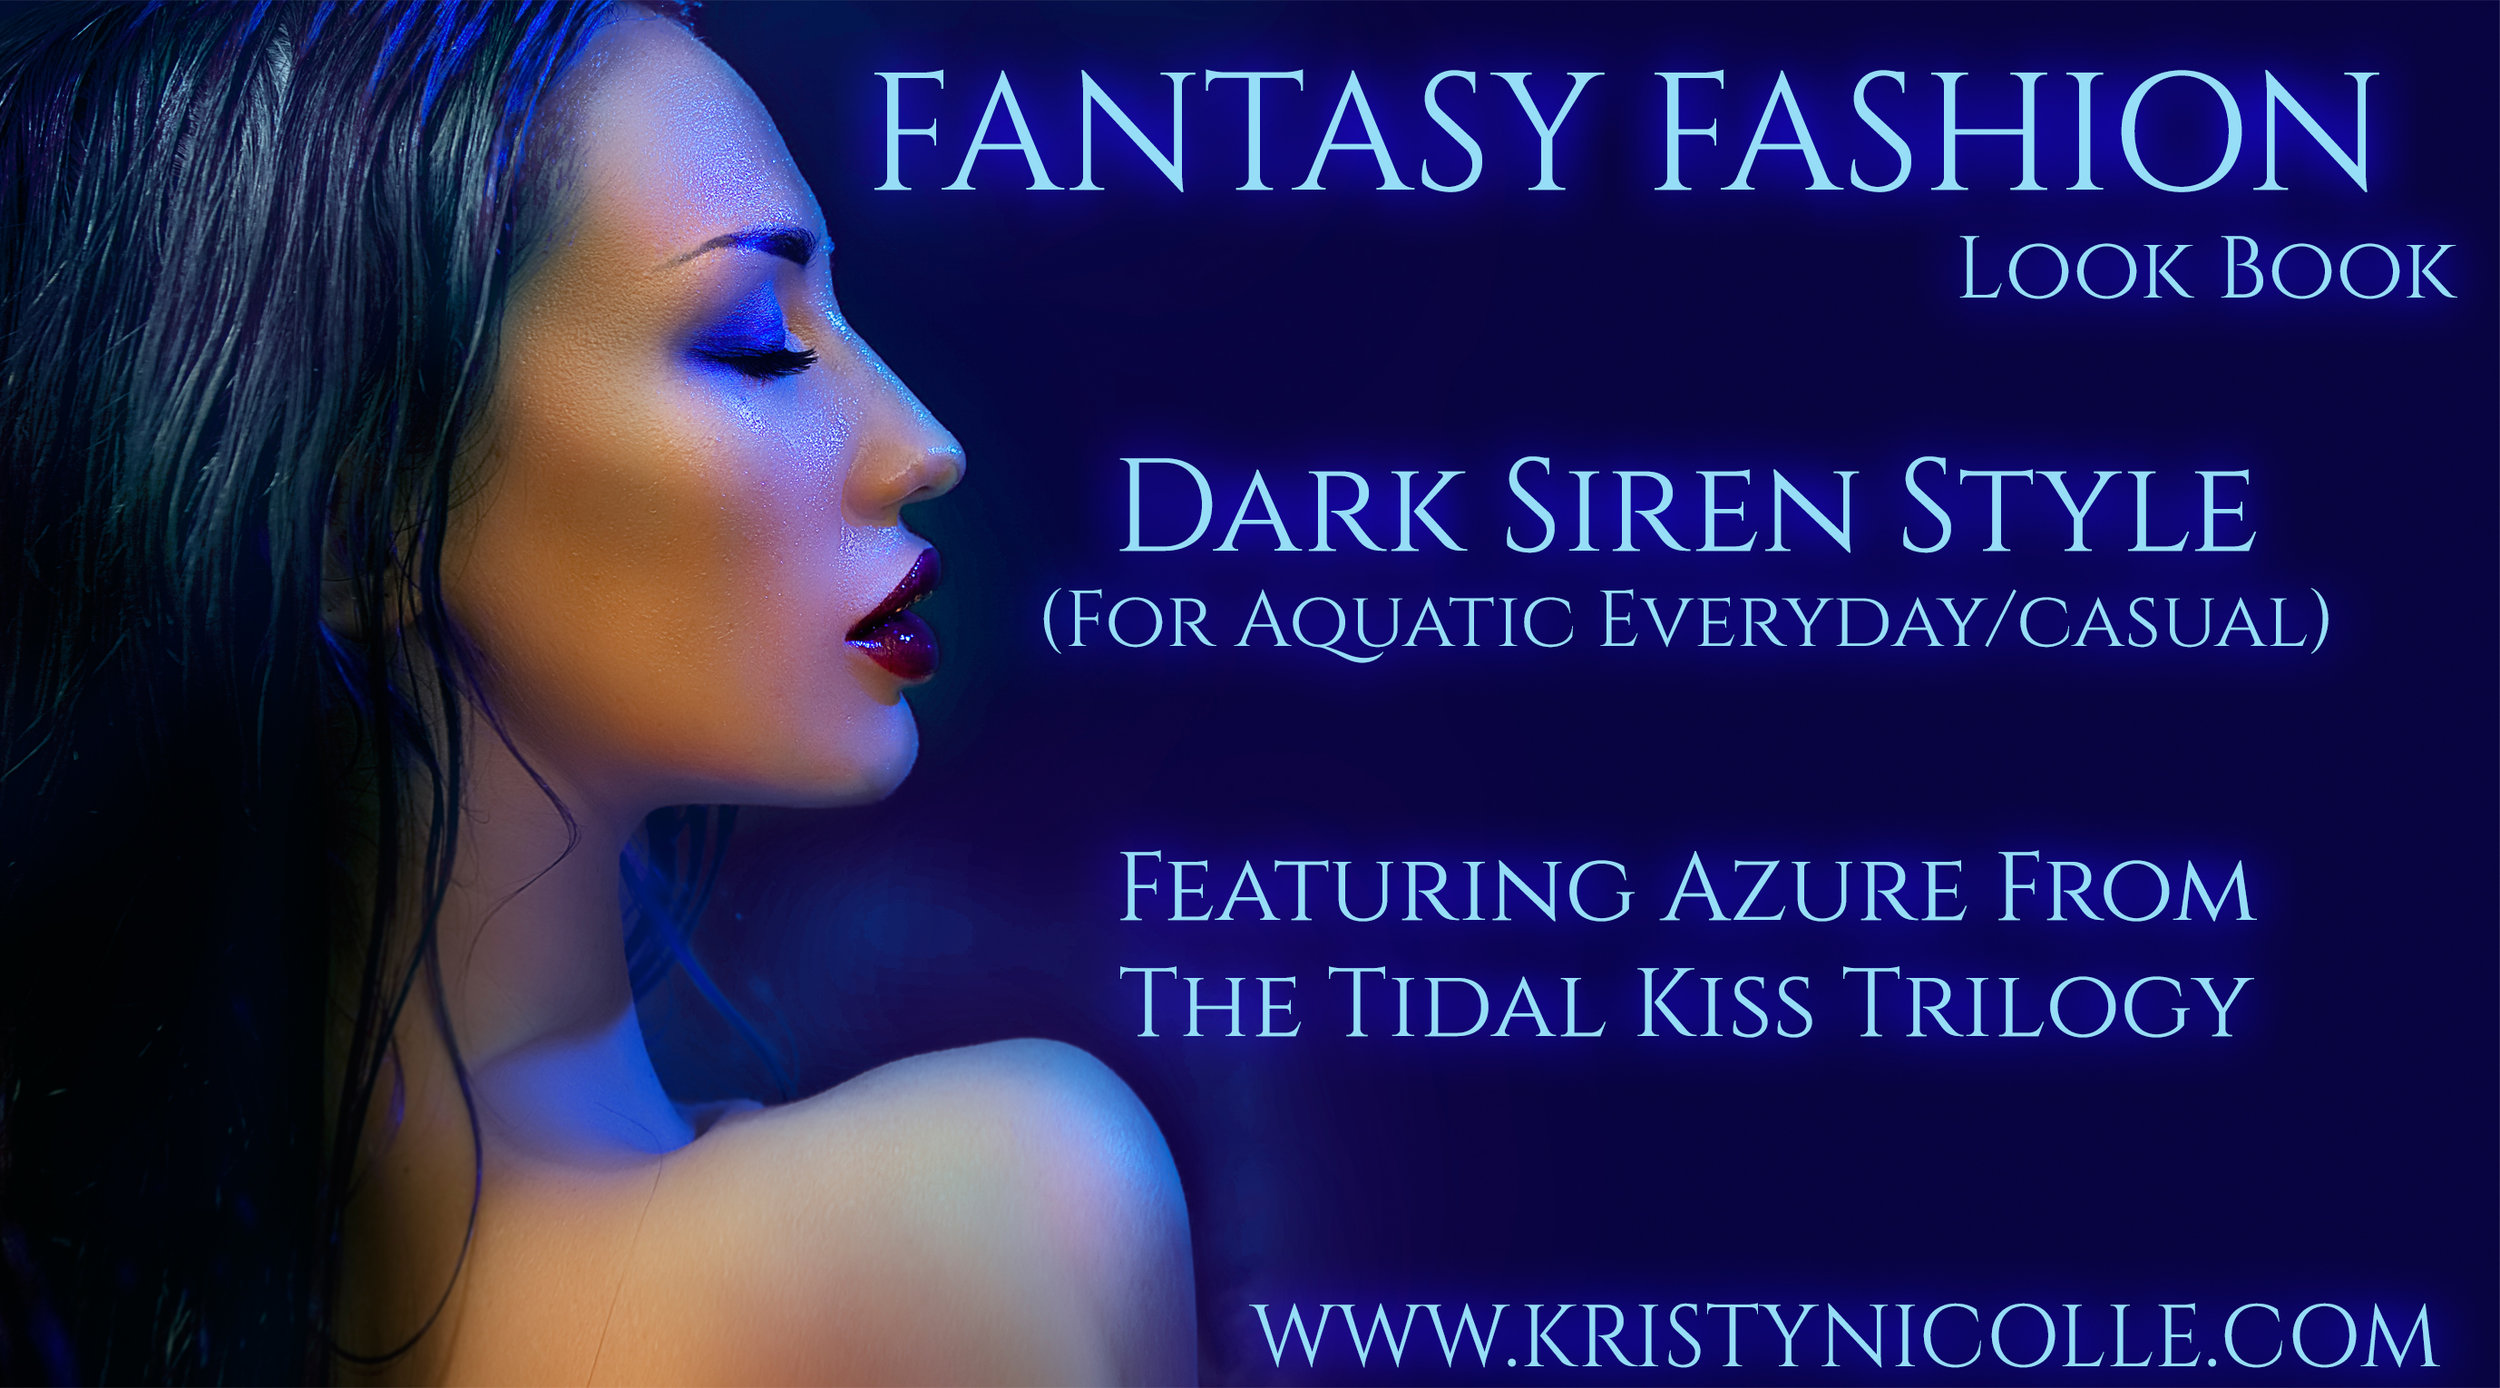 The Tidal Kiss Trilogy Fantasy Fashion